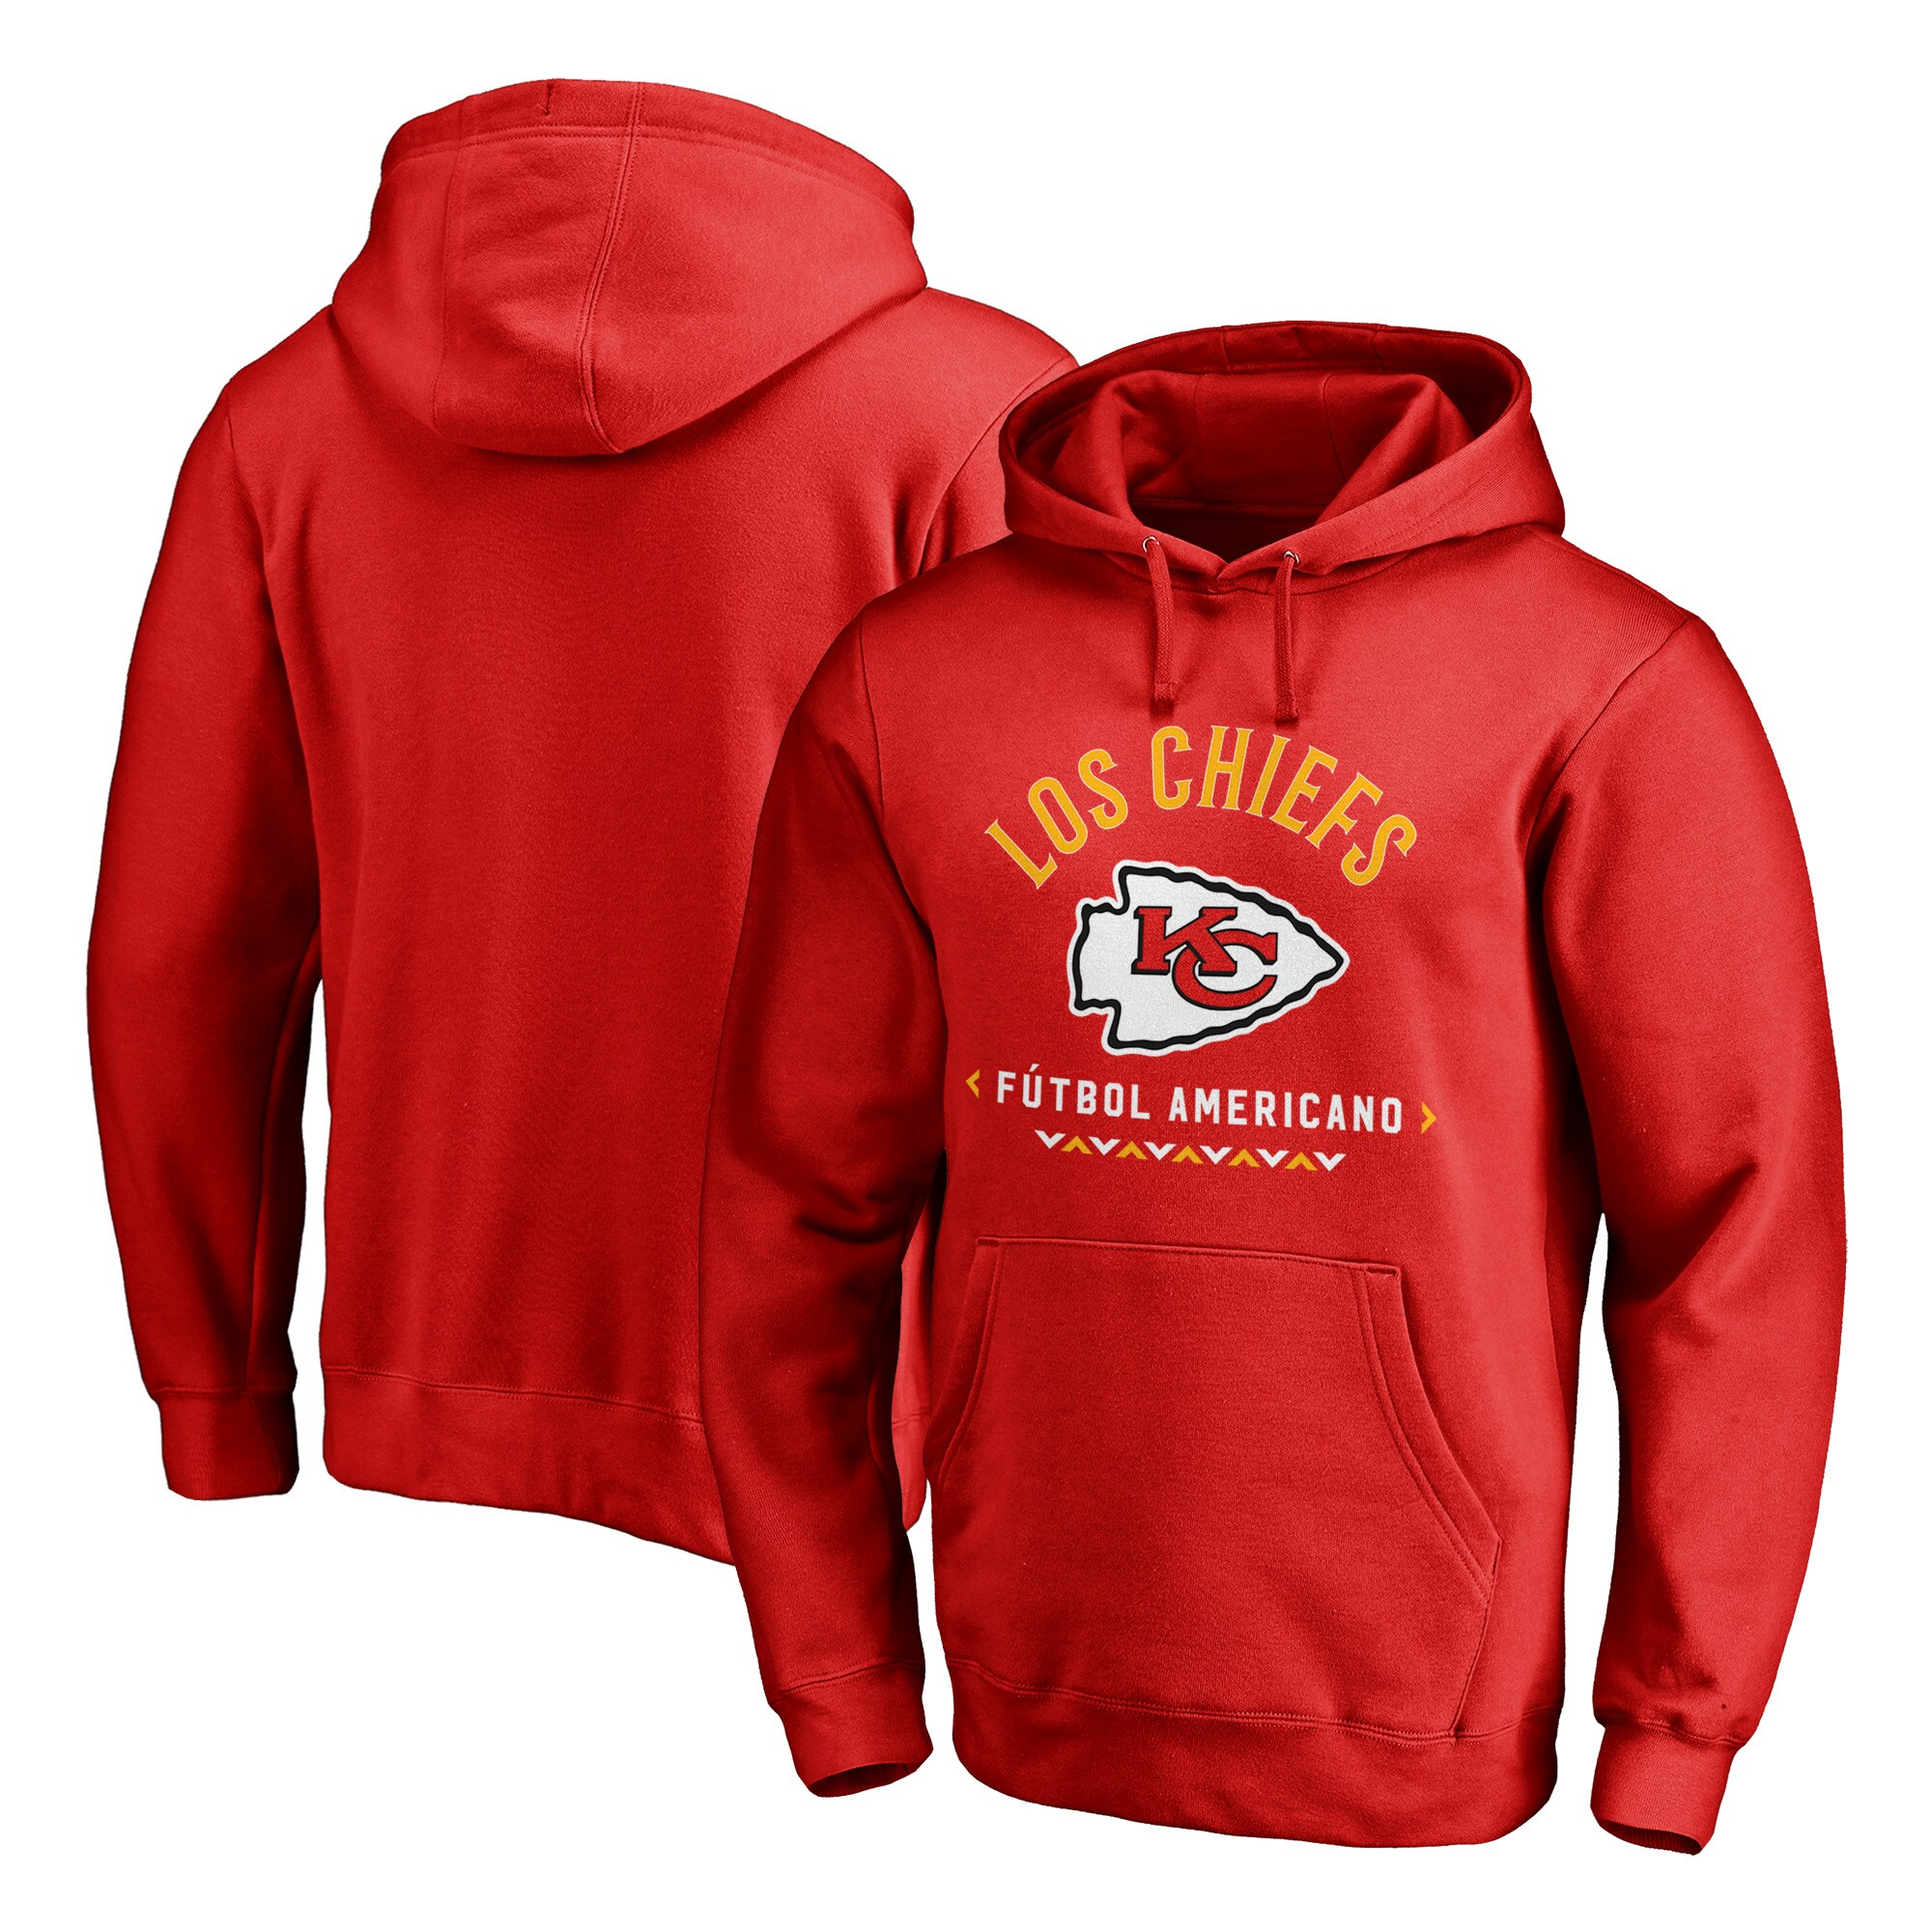 Kansas City Chiefs NFL Pro Line by Fanatics Branded Futbol Americano Pullover Hoodie - Red